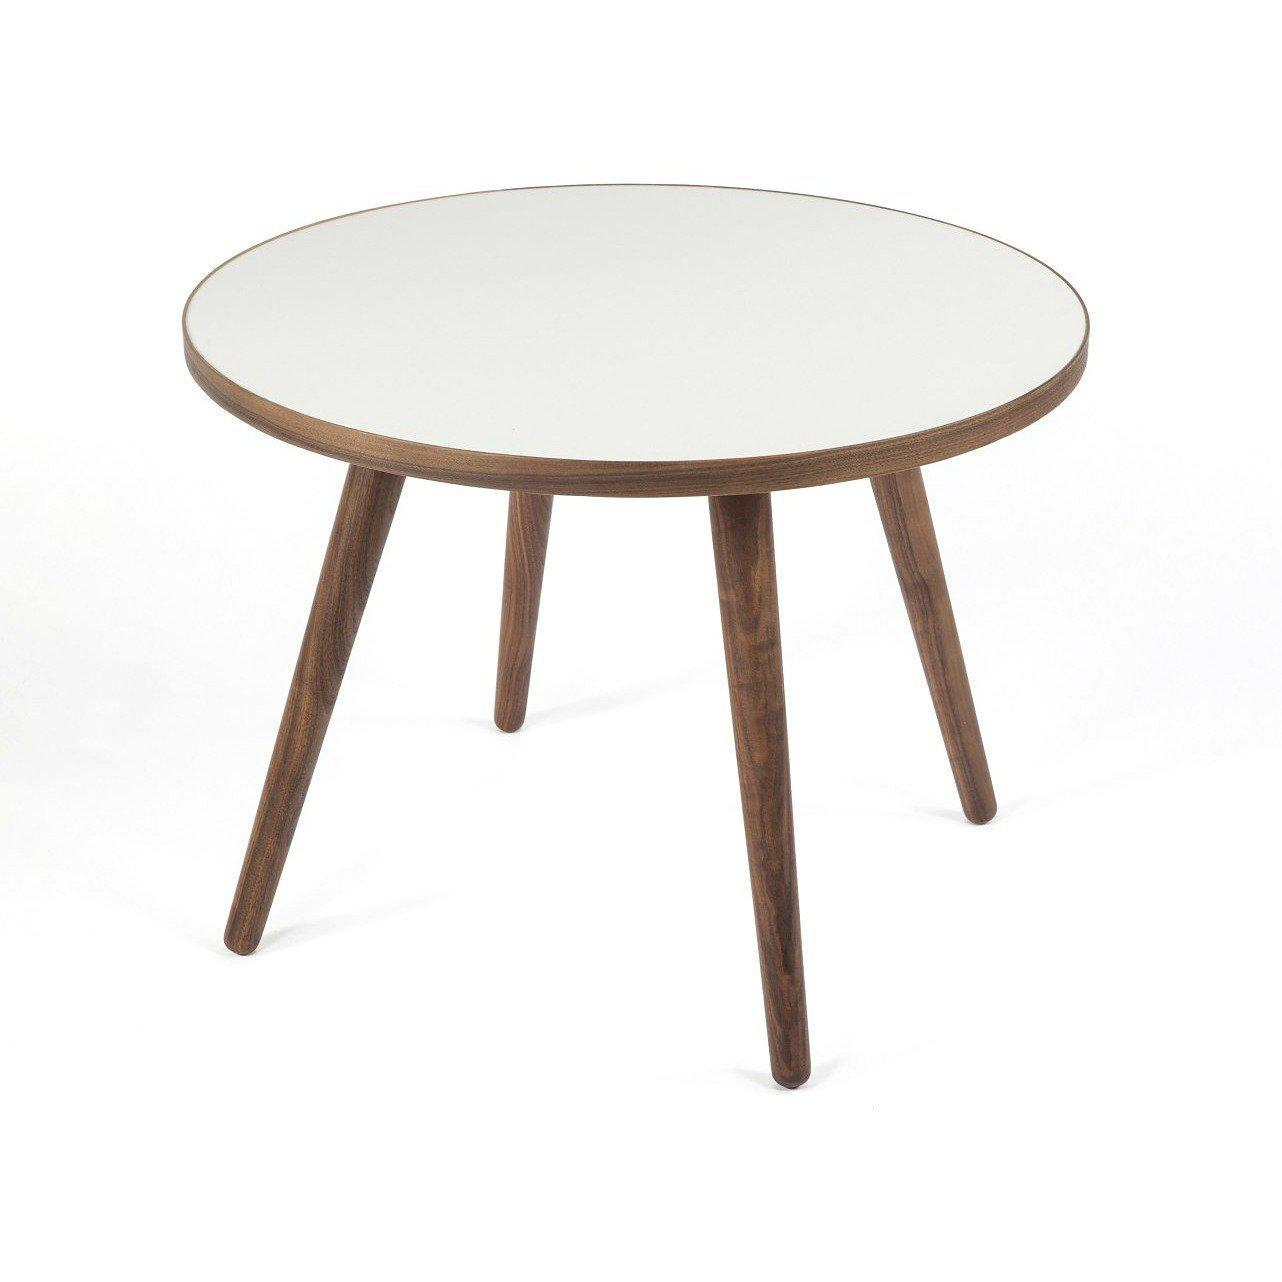 [FET5439DWALNUT] The Sputnik Coffee Table